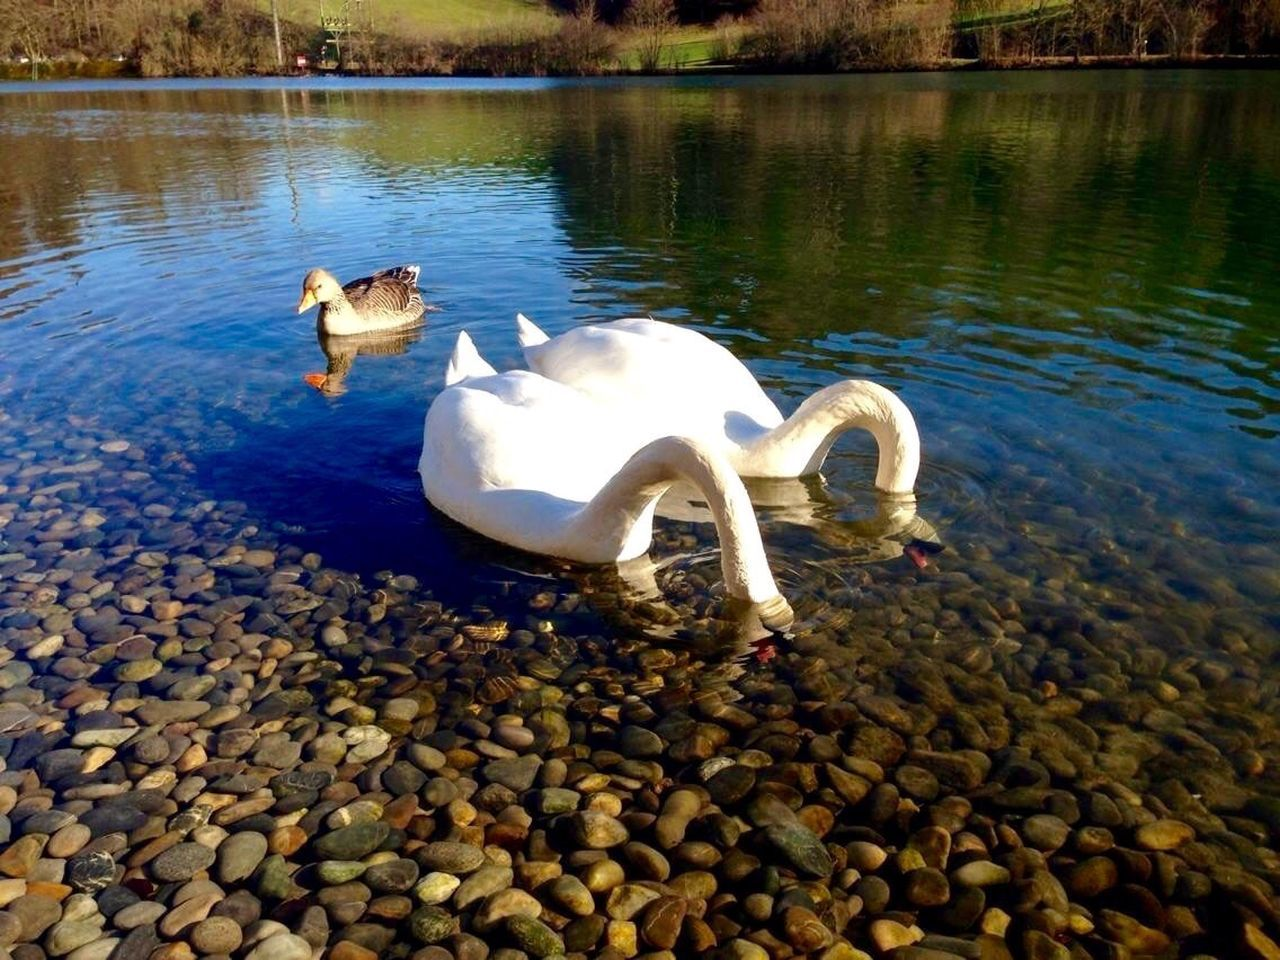 lake, water, swan, animal themes, animals in the wild, reflection, no people, nature, day, bird, outdoors, swimming, close-up